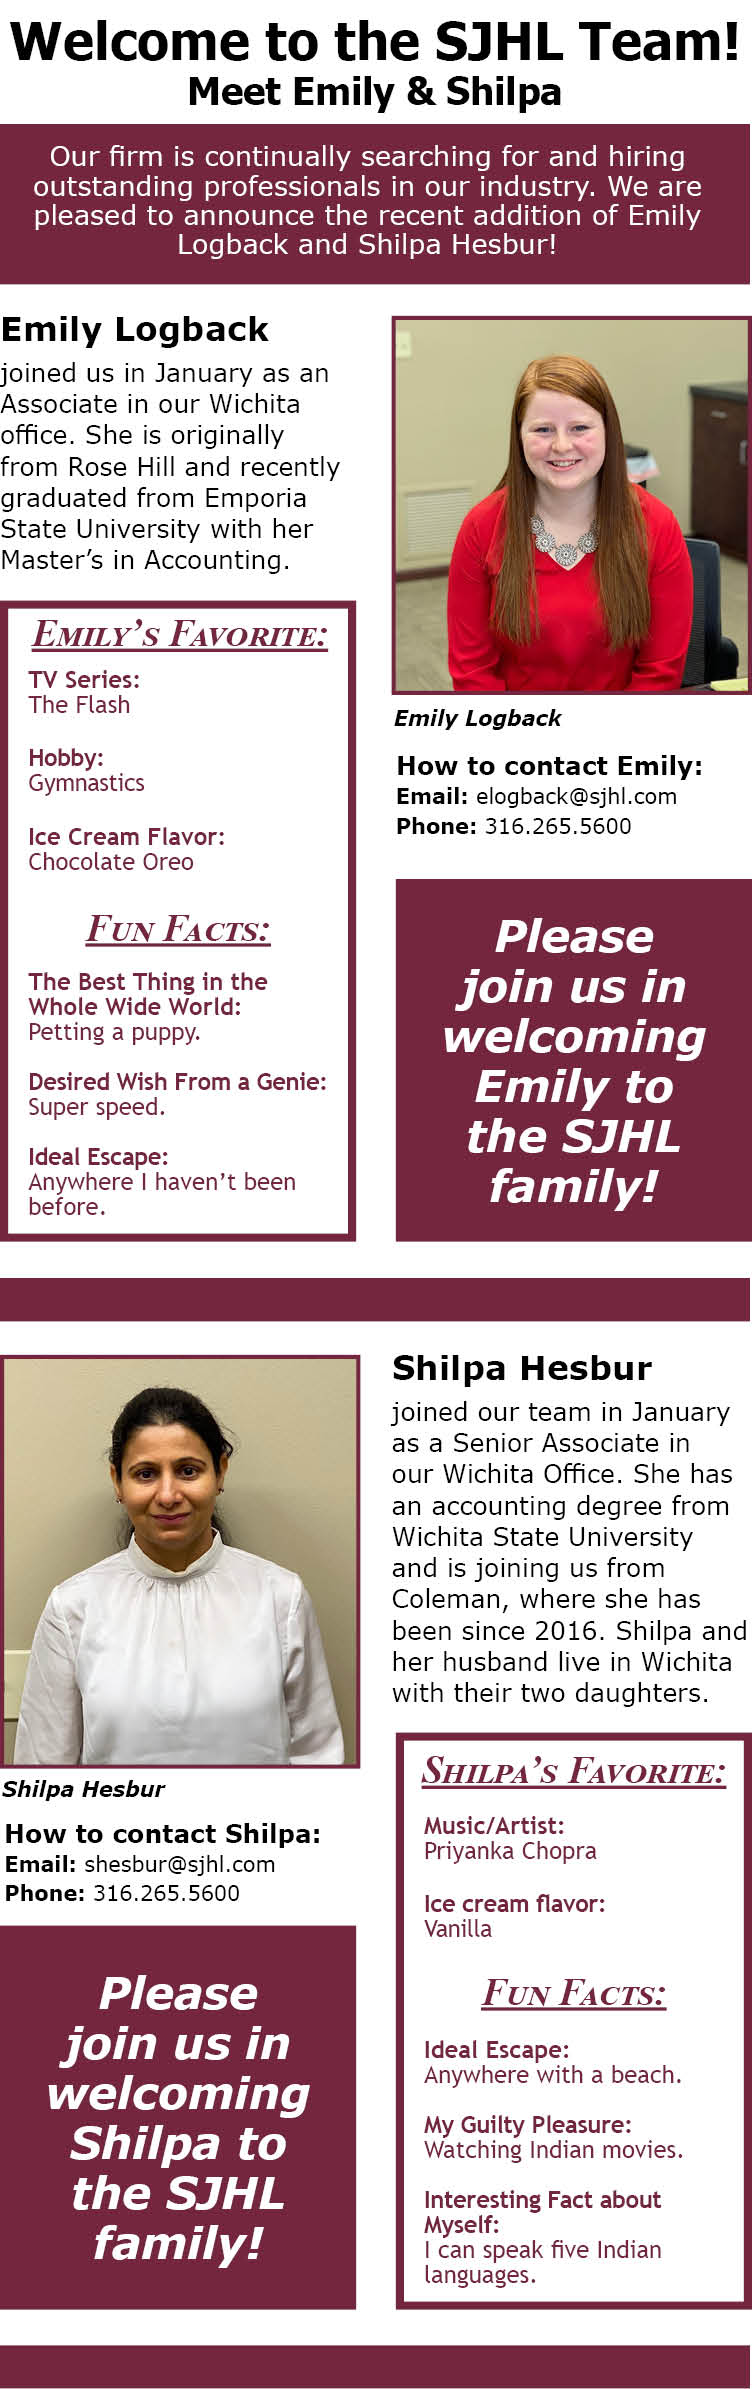 Welcome Emily and Shilpa